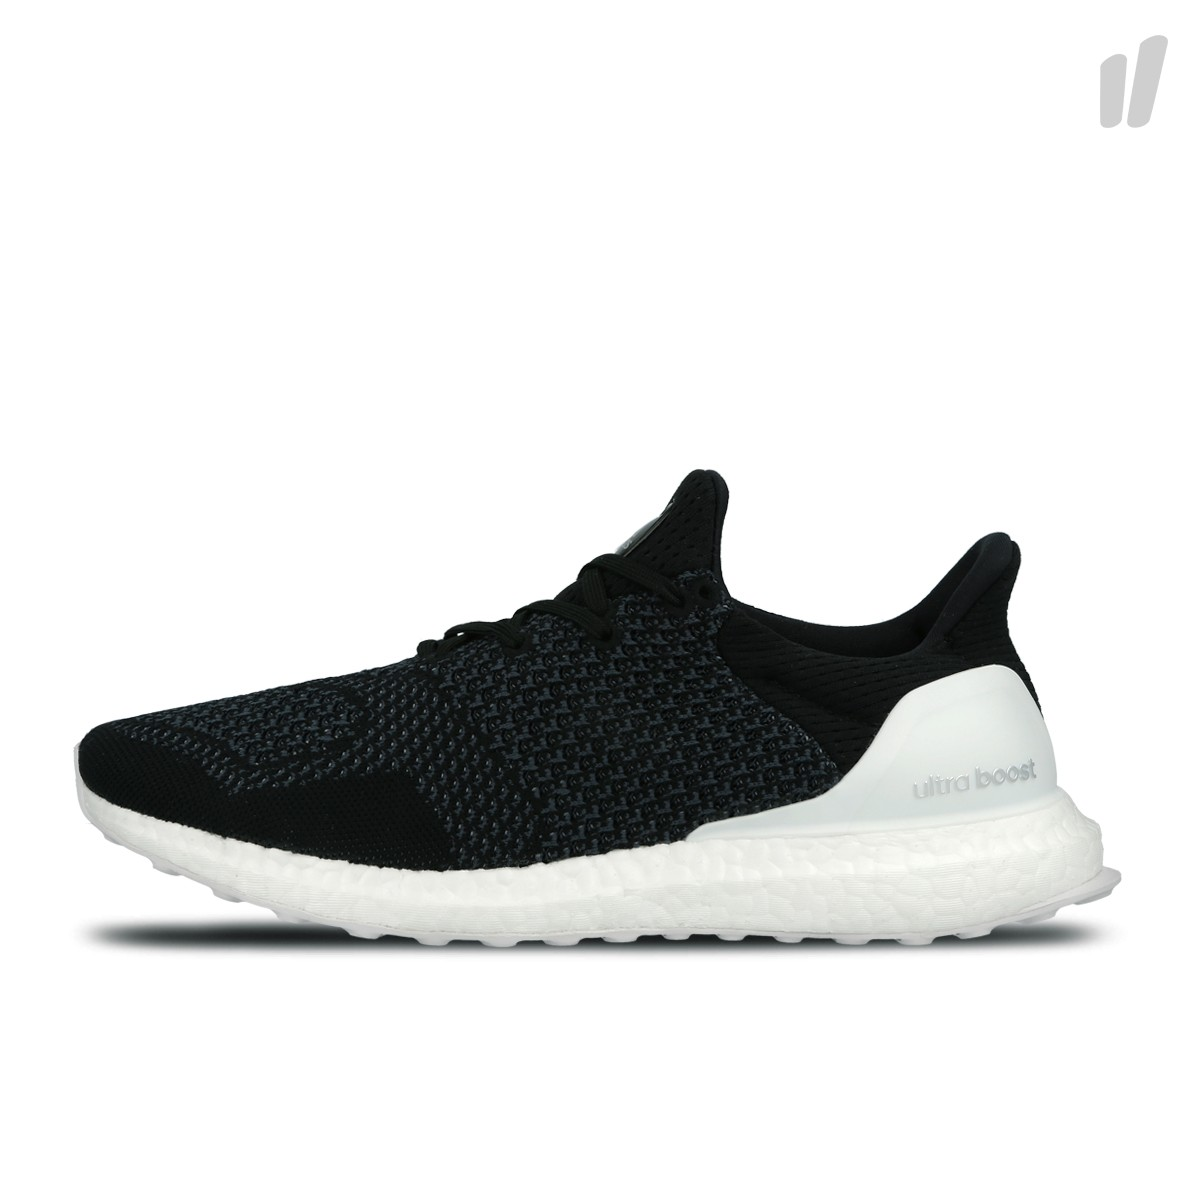 the latest 45502 70863 Very Goods | Adidas Ultra Boost Uncaged ( AQ8257 ...